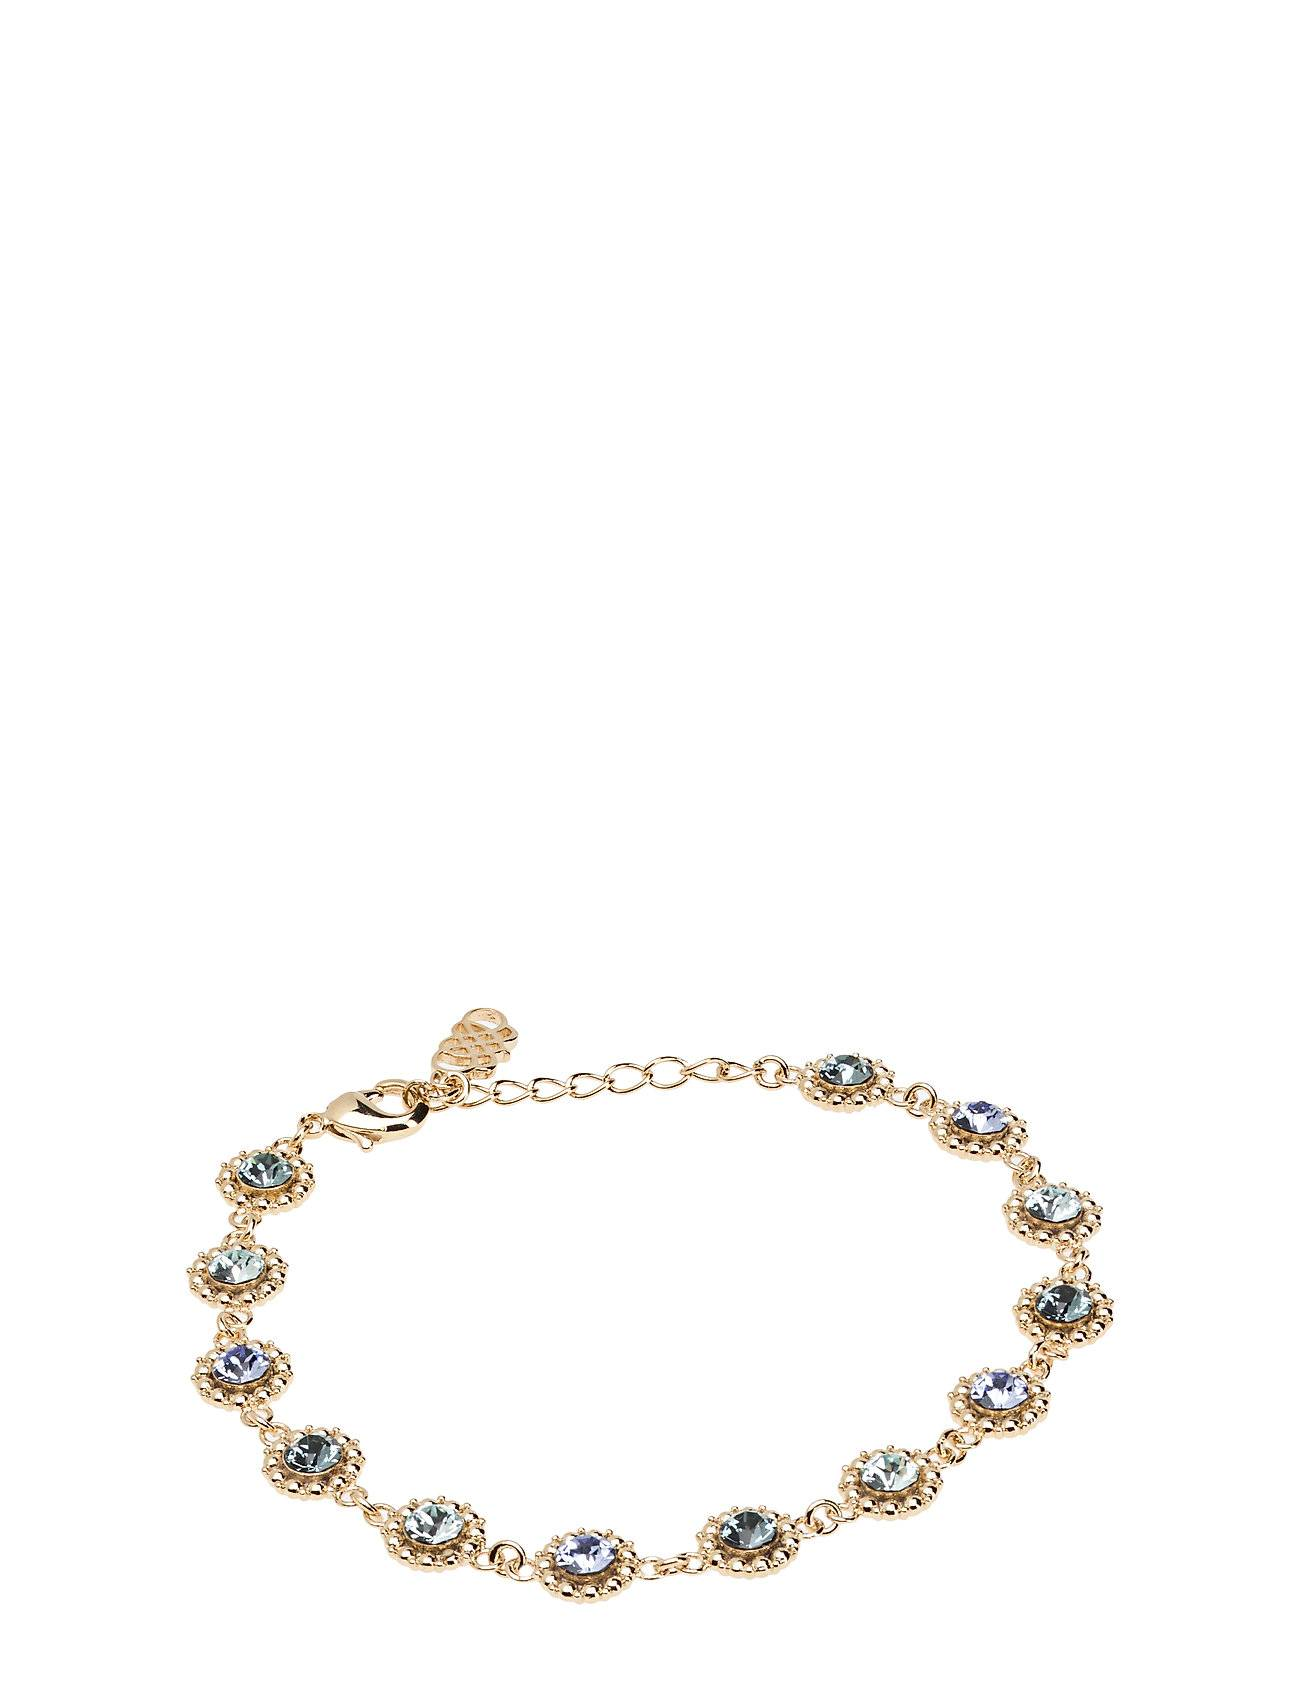 LILY AND ROSE Petite Kate Bracelet - Indian Summer Accessories Jewellery Bracelets Chain Bracelets Sininen LILY AND ROSE